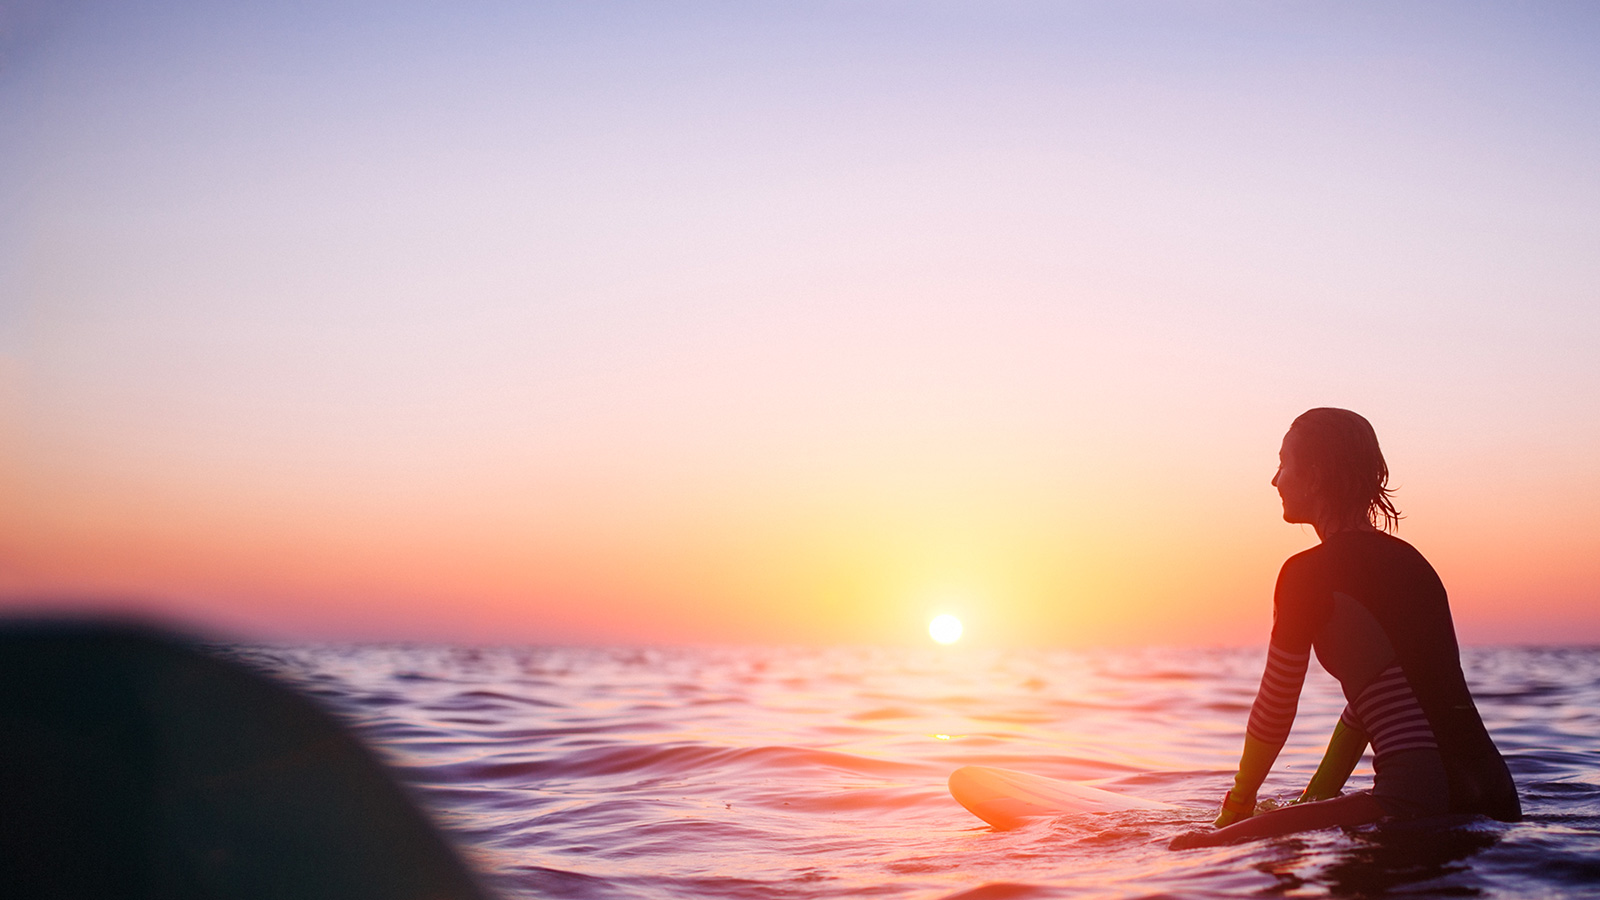 Surfer looks at a sunset from the water.